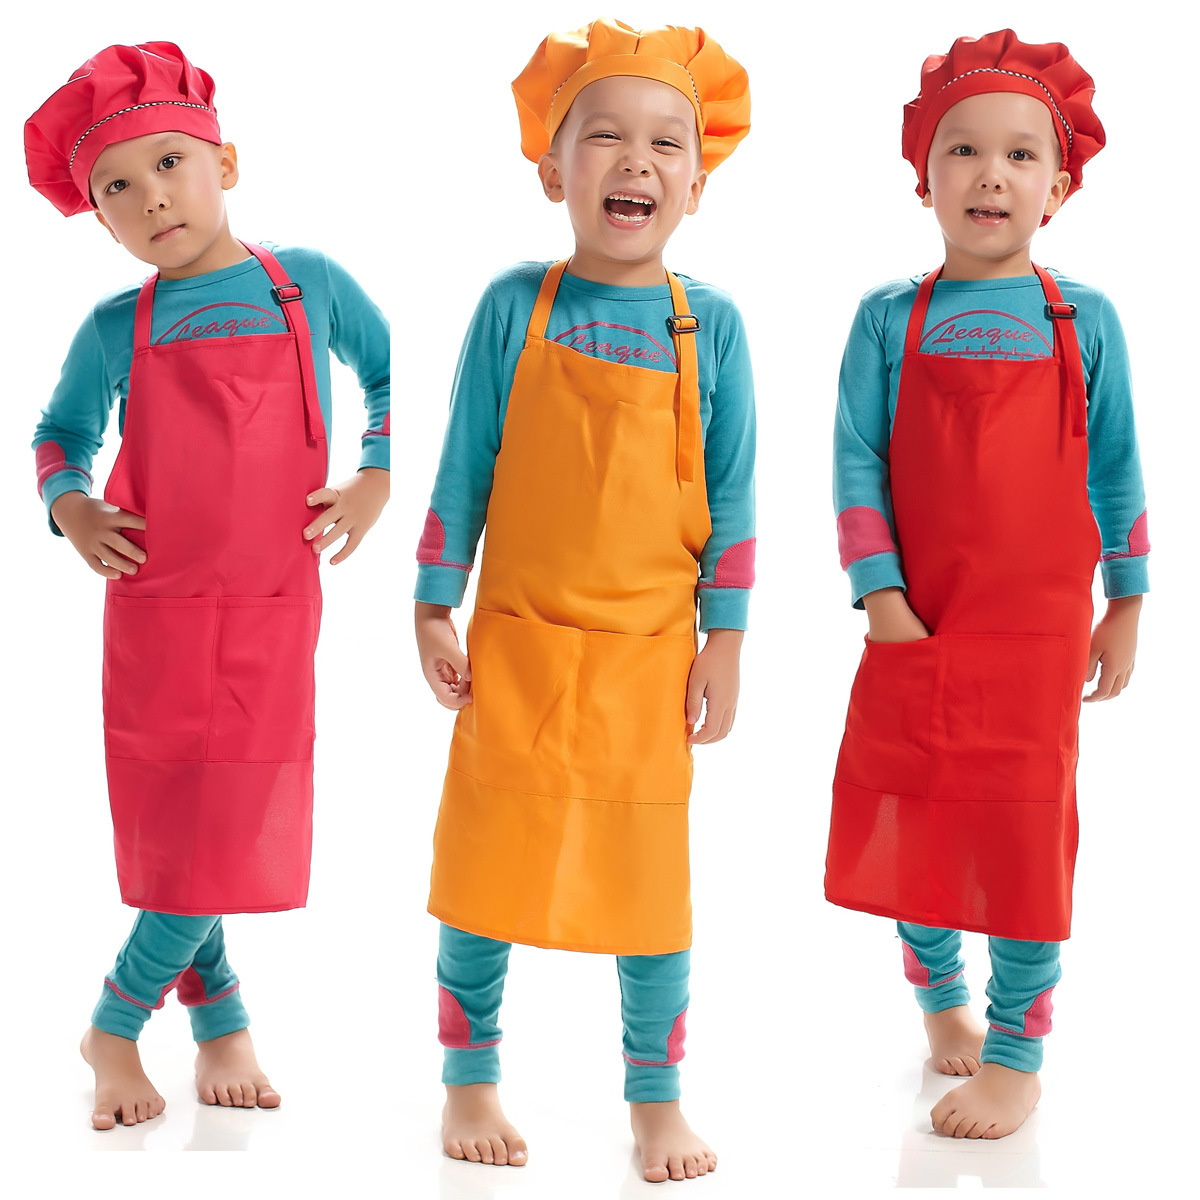 kitchen apron for kids small pendant lights detail feedback questions about cute children plain cooking baking painting bib household anti dust sleeveless on